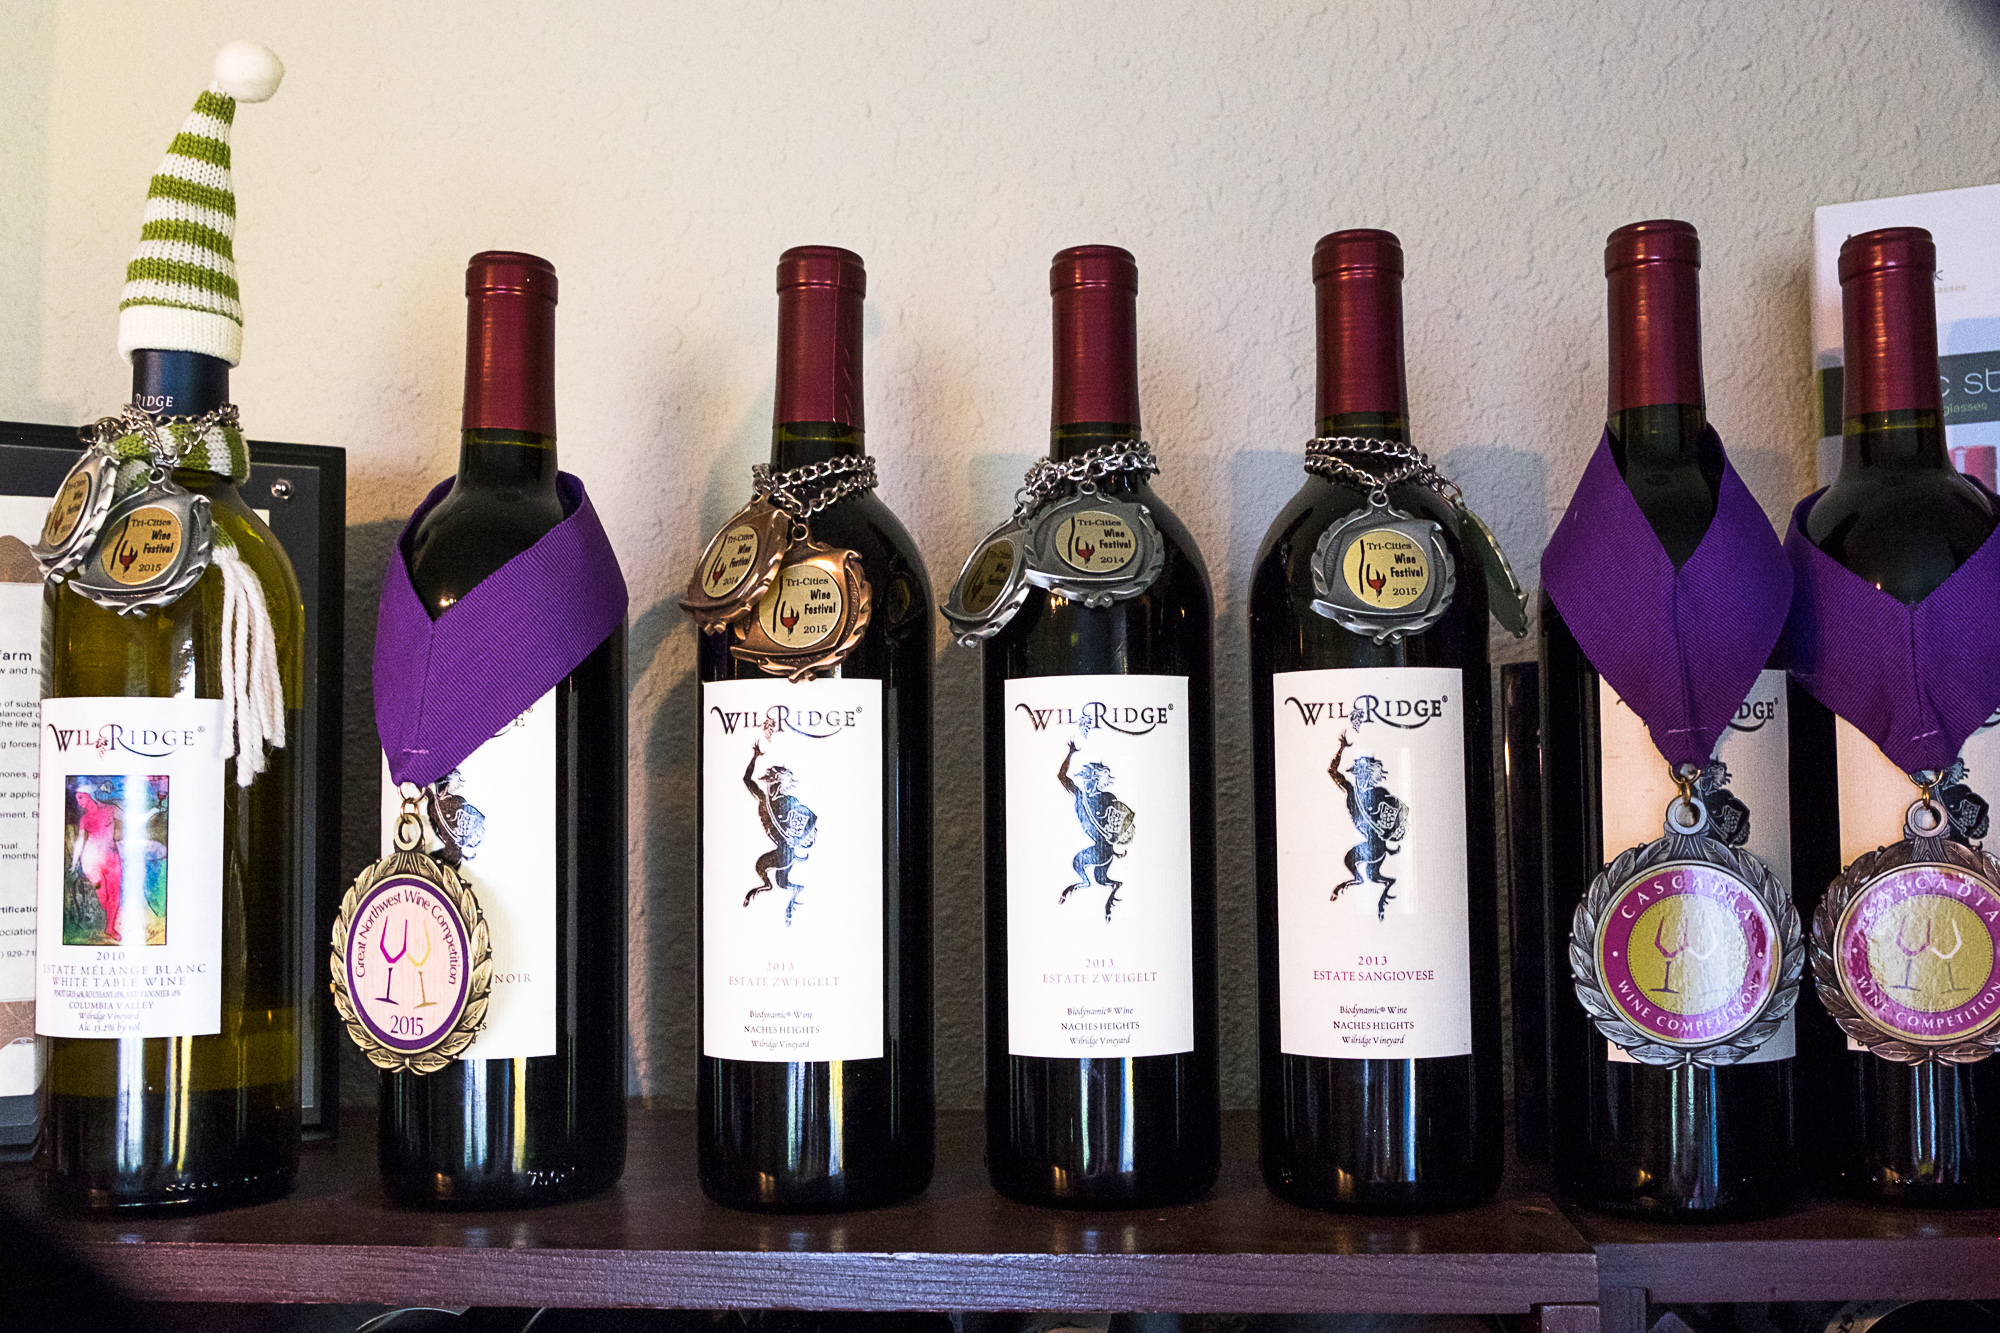 Award winning Wilridge Winery wines (Image: Paola Thomas/Seattle Refined)